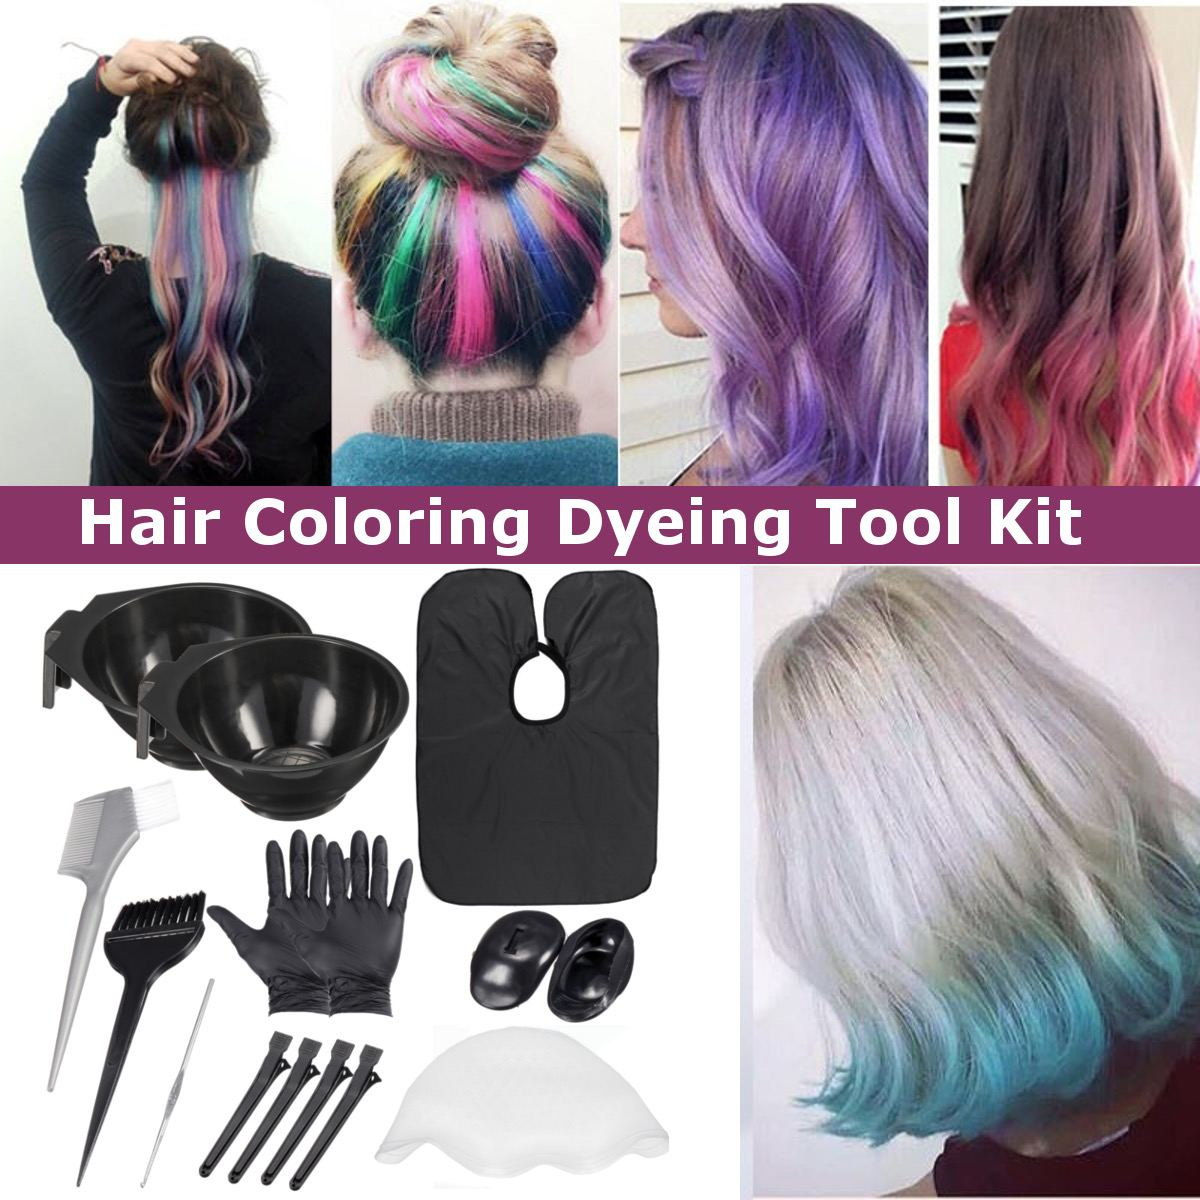 Salon Hair Color Dye Bowl Comb Brushes Tool Kit Set With